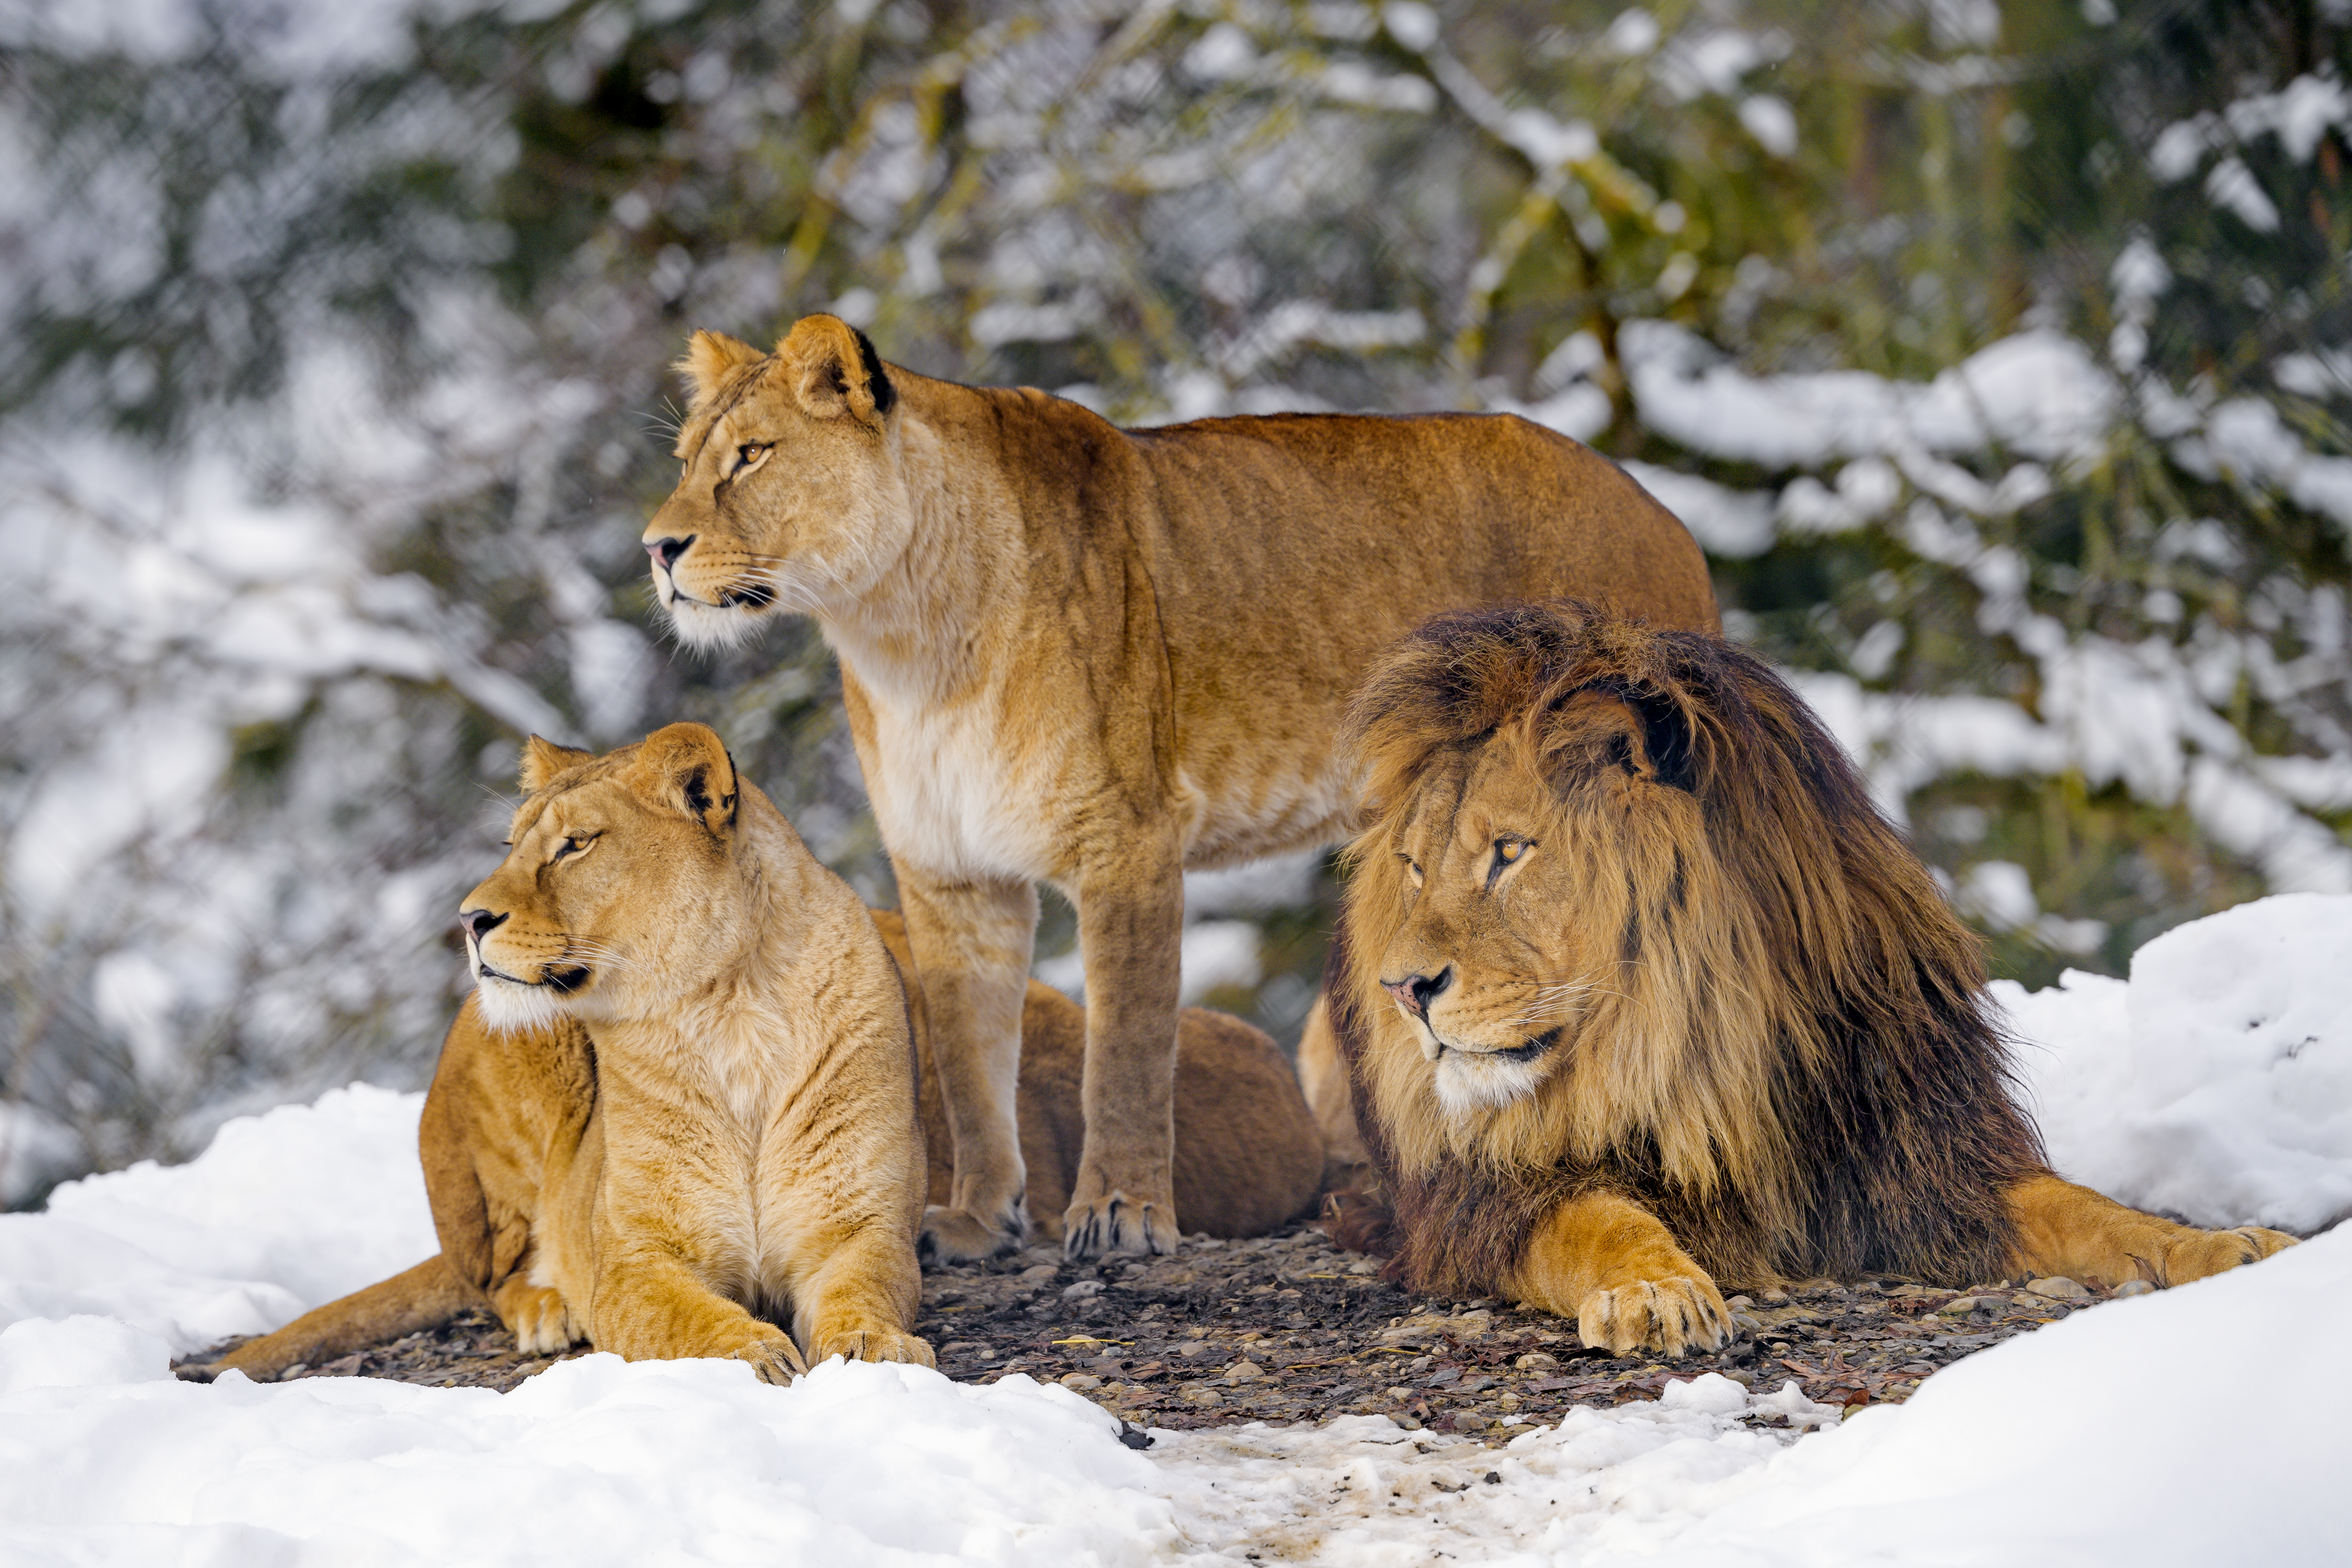 90090 download wallpaper Animals, Predators, Wildlife, Lions screensavers and pictures for free